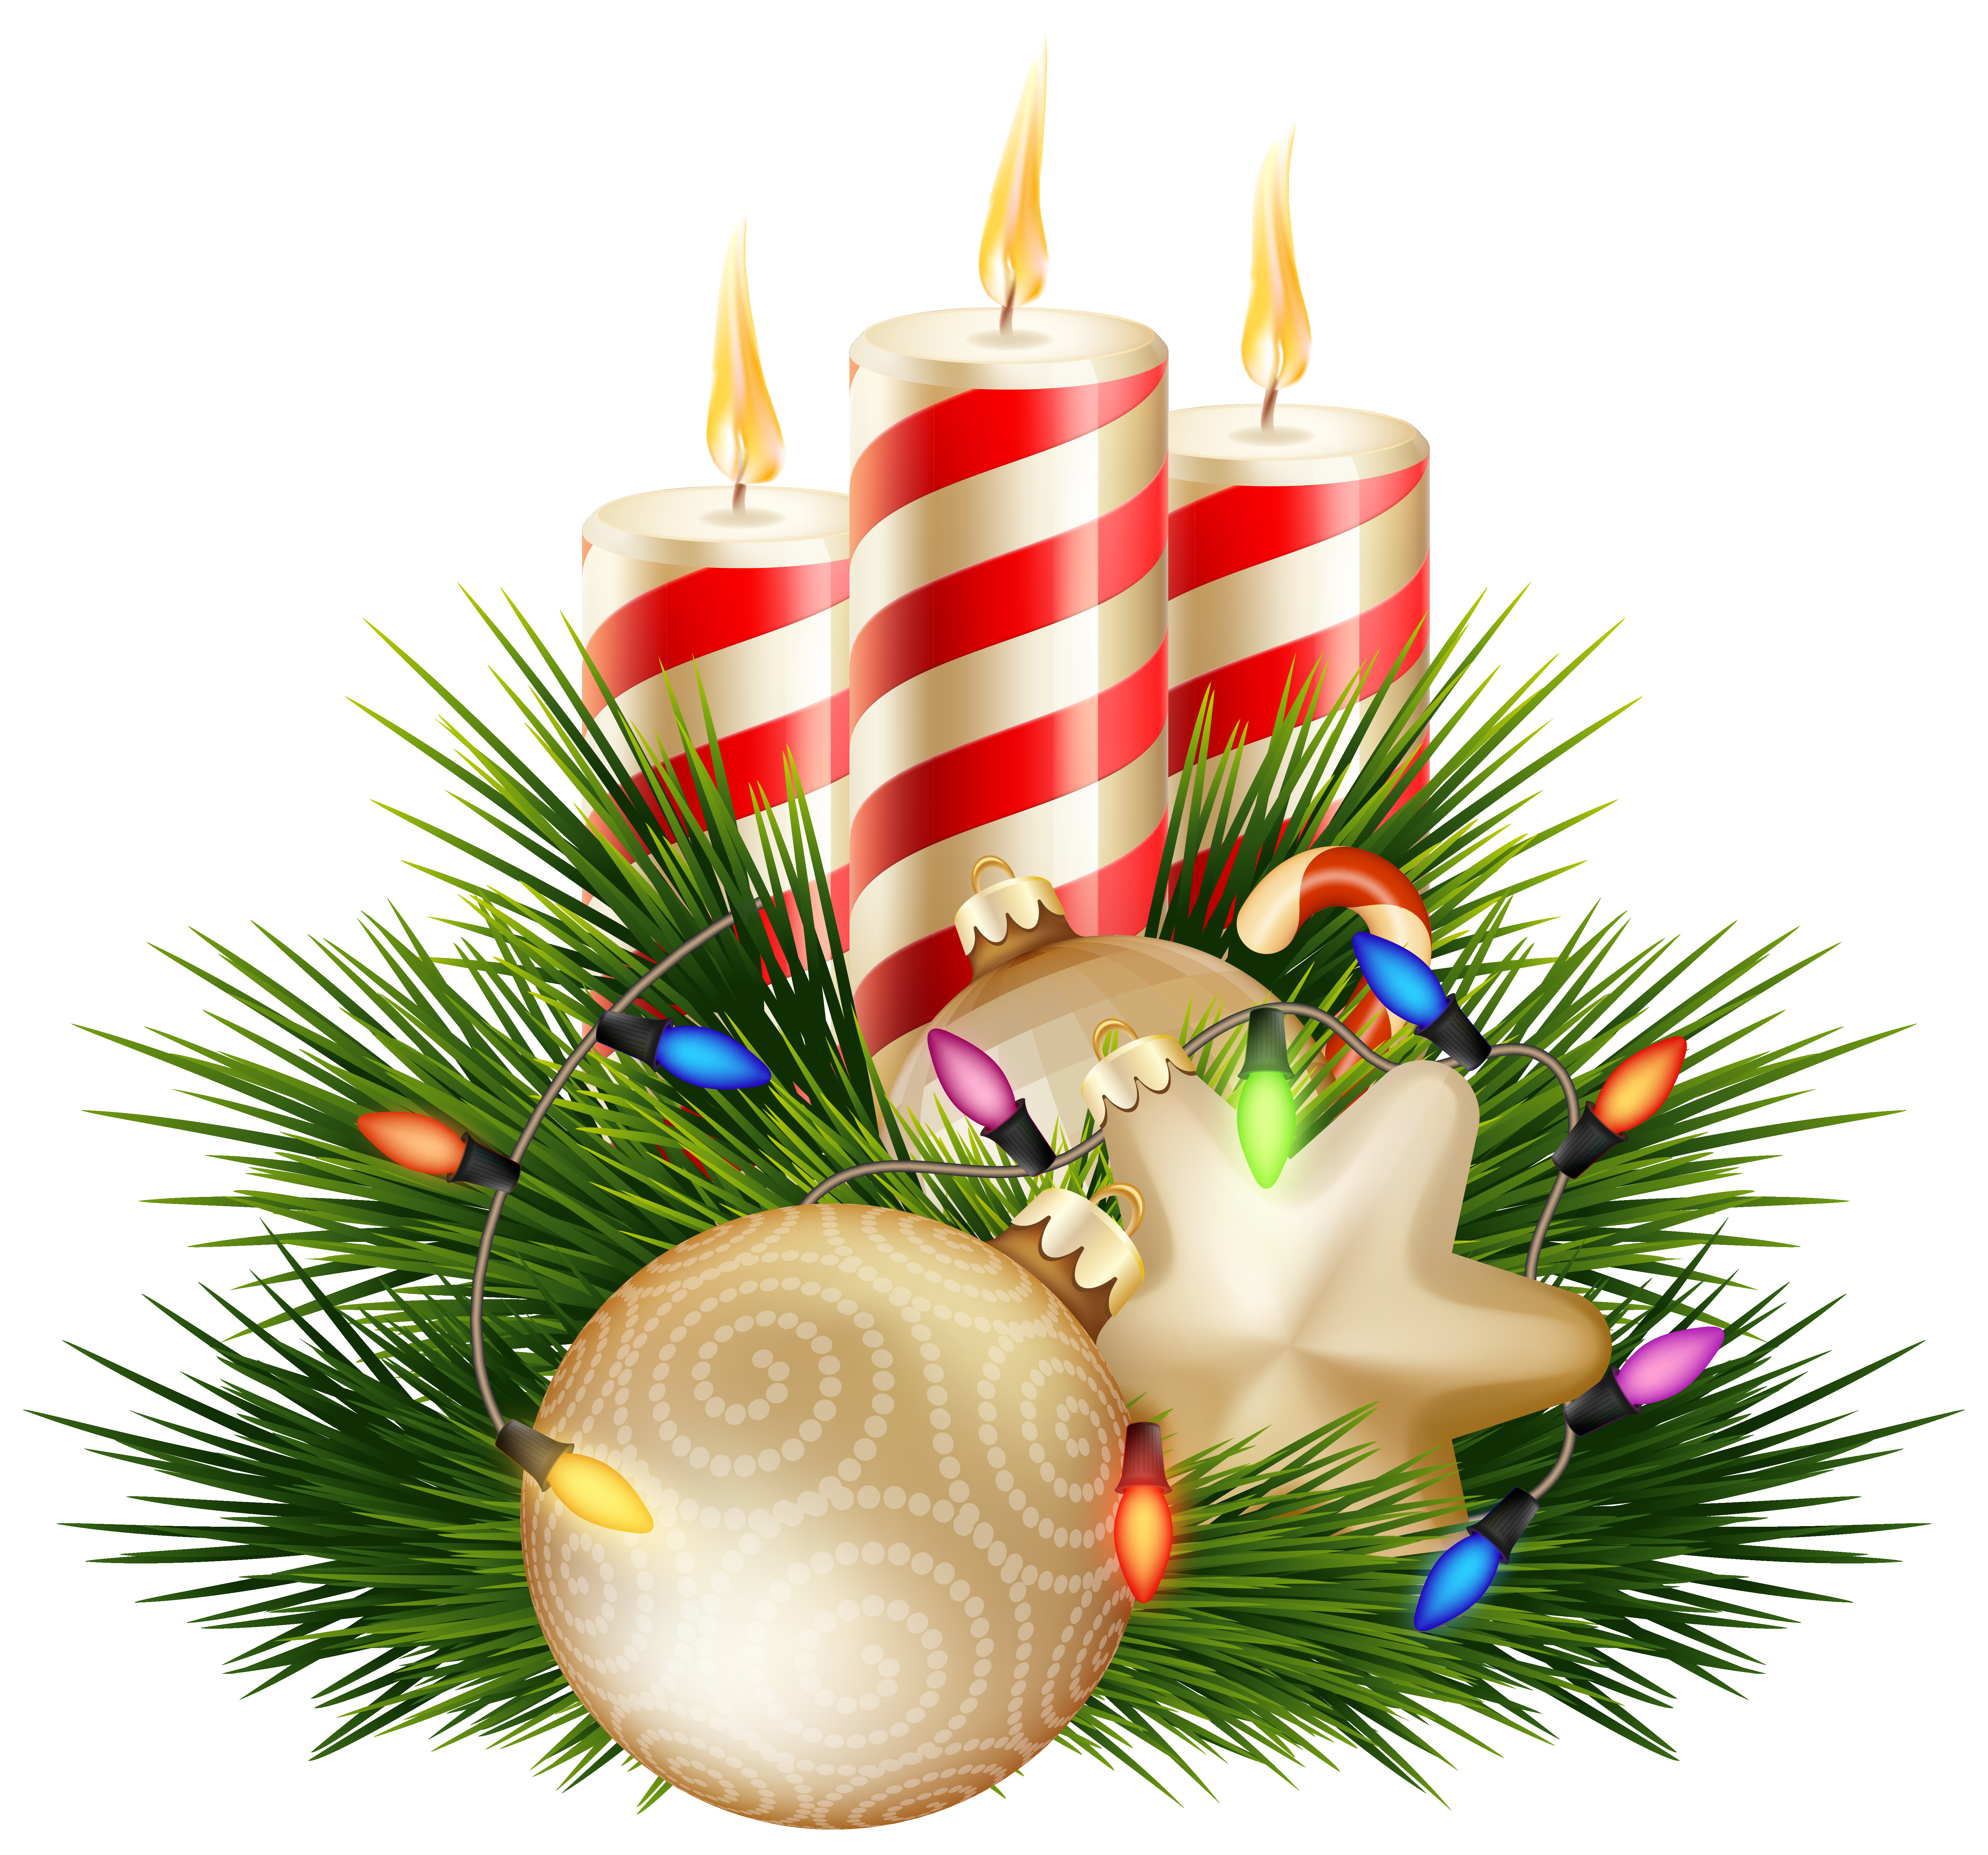 Christmas Candle Decorative PNG Clipart Image.